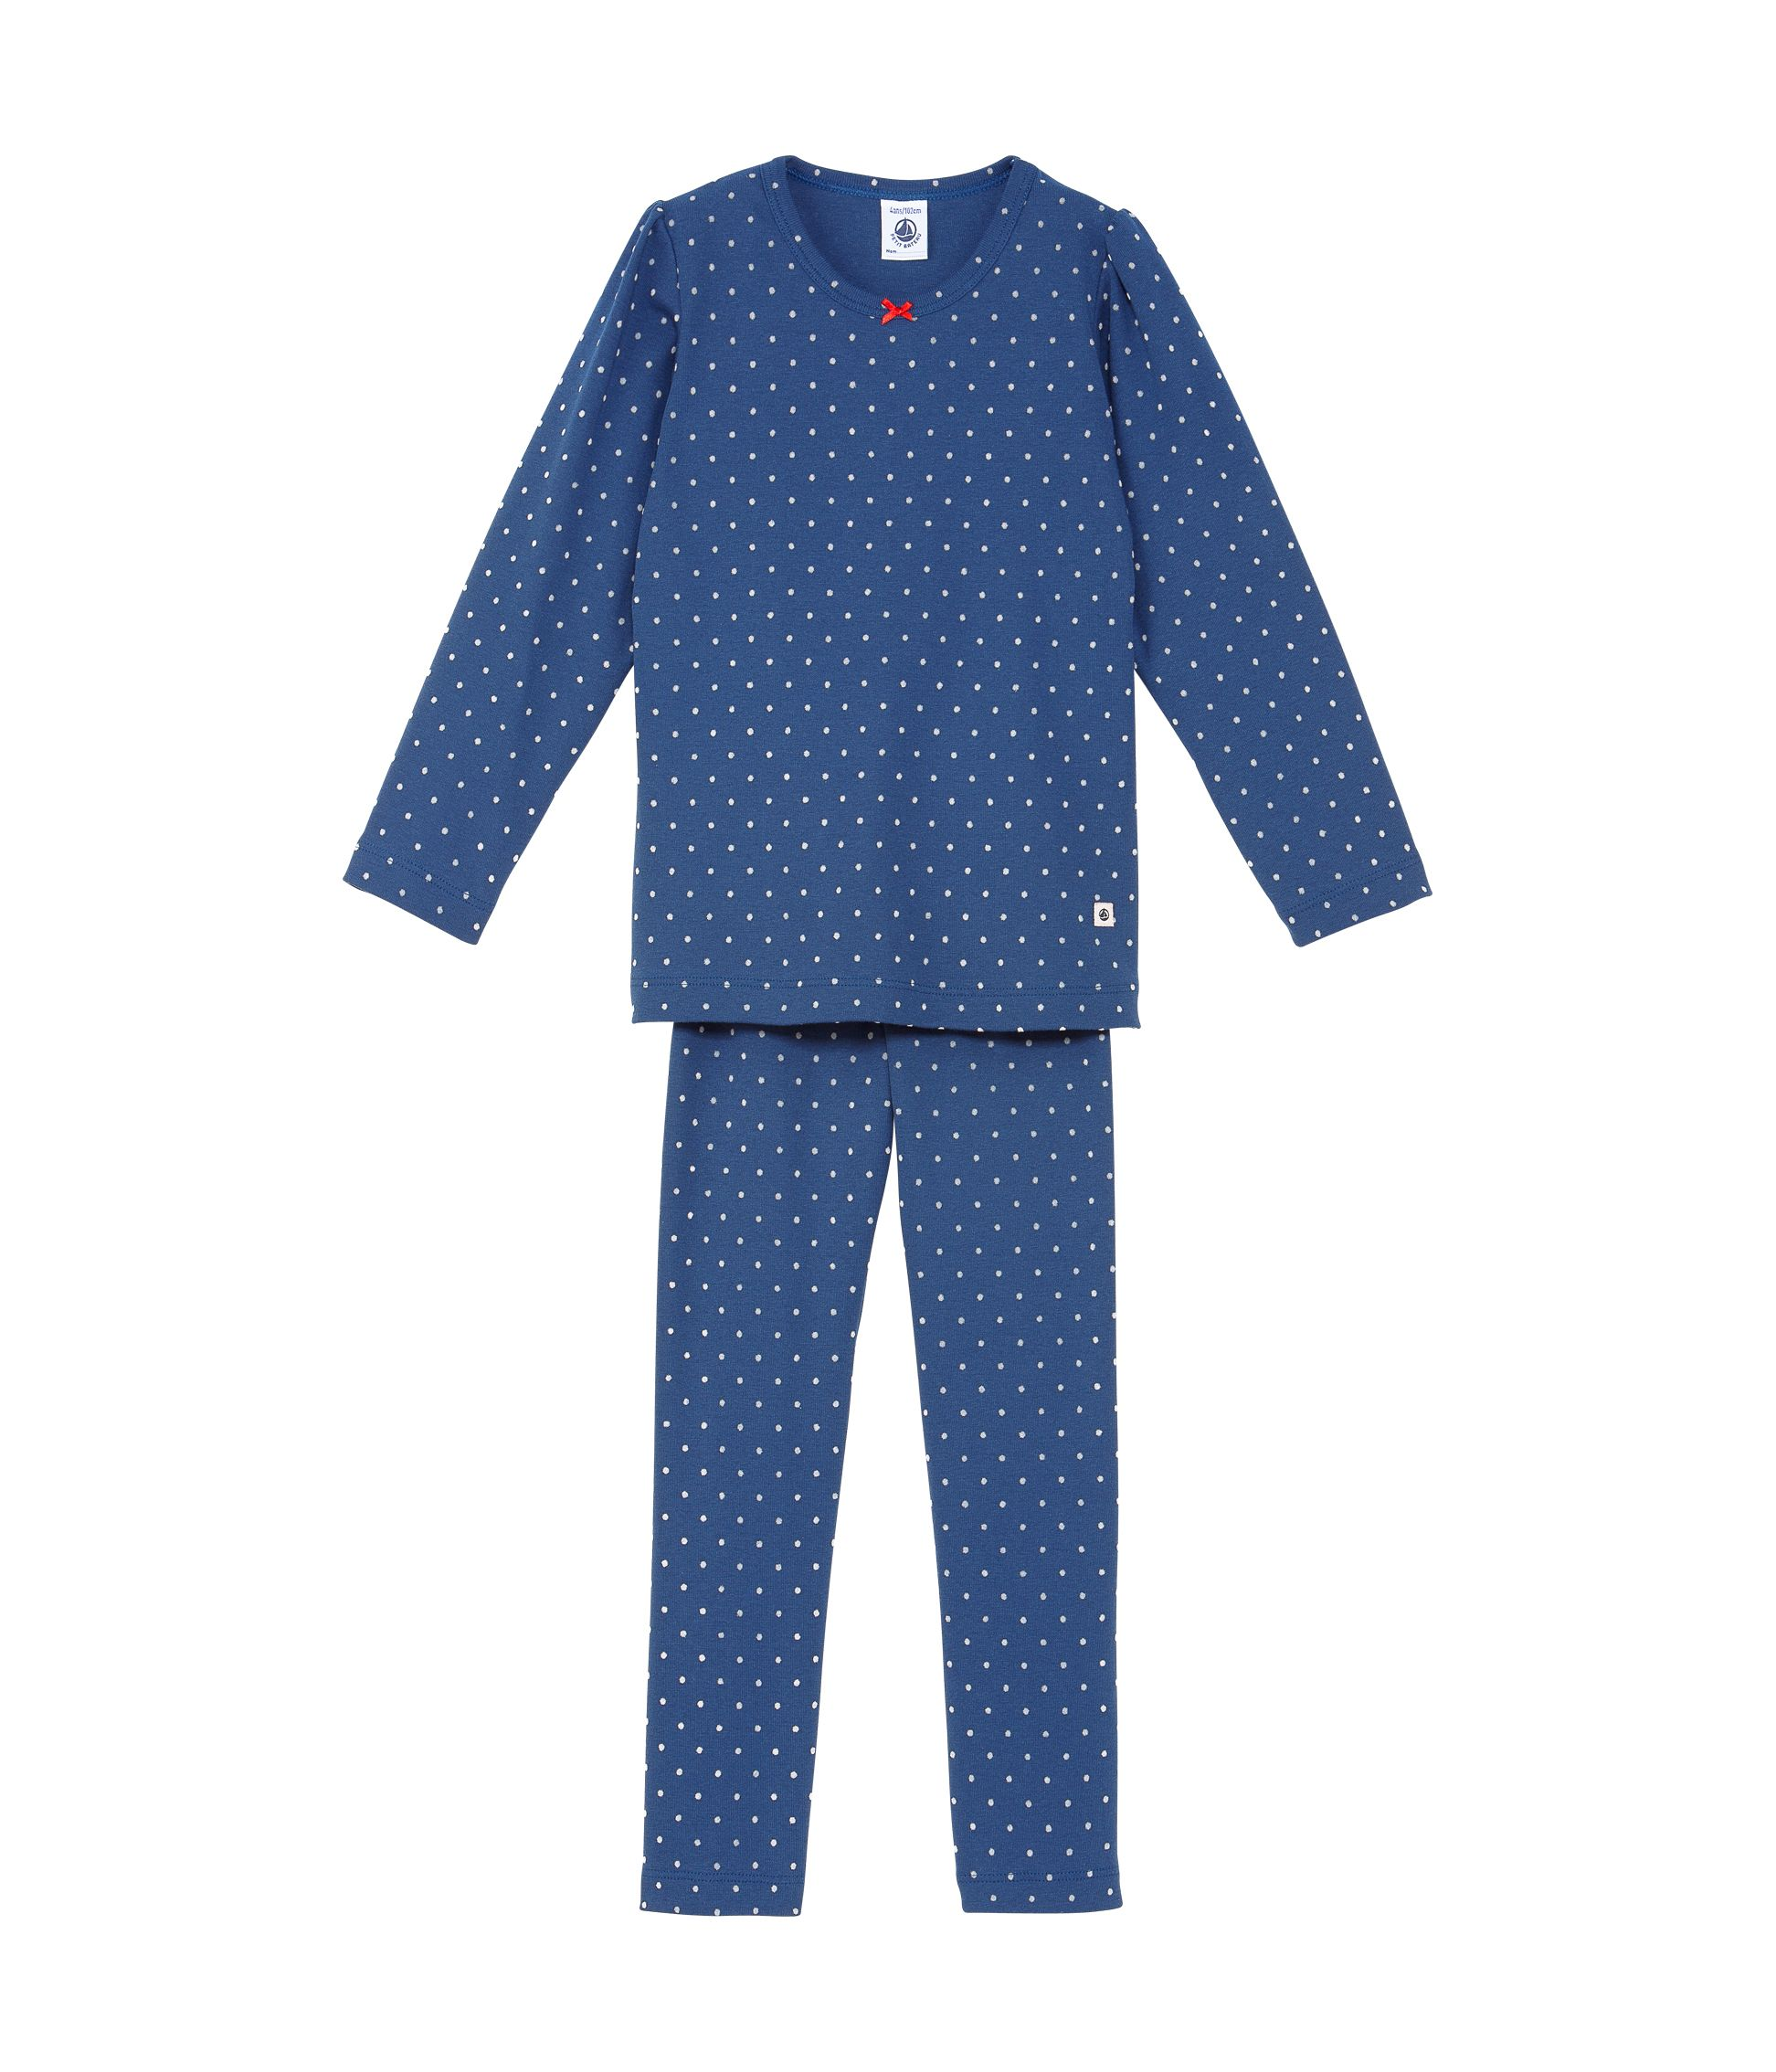 Girls mini polka dot pyjamas